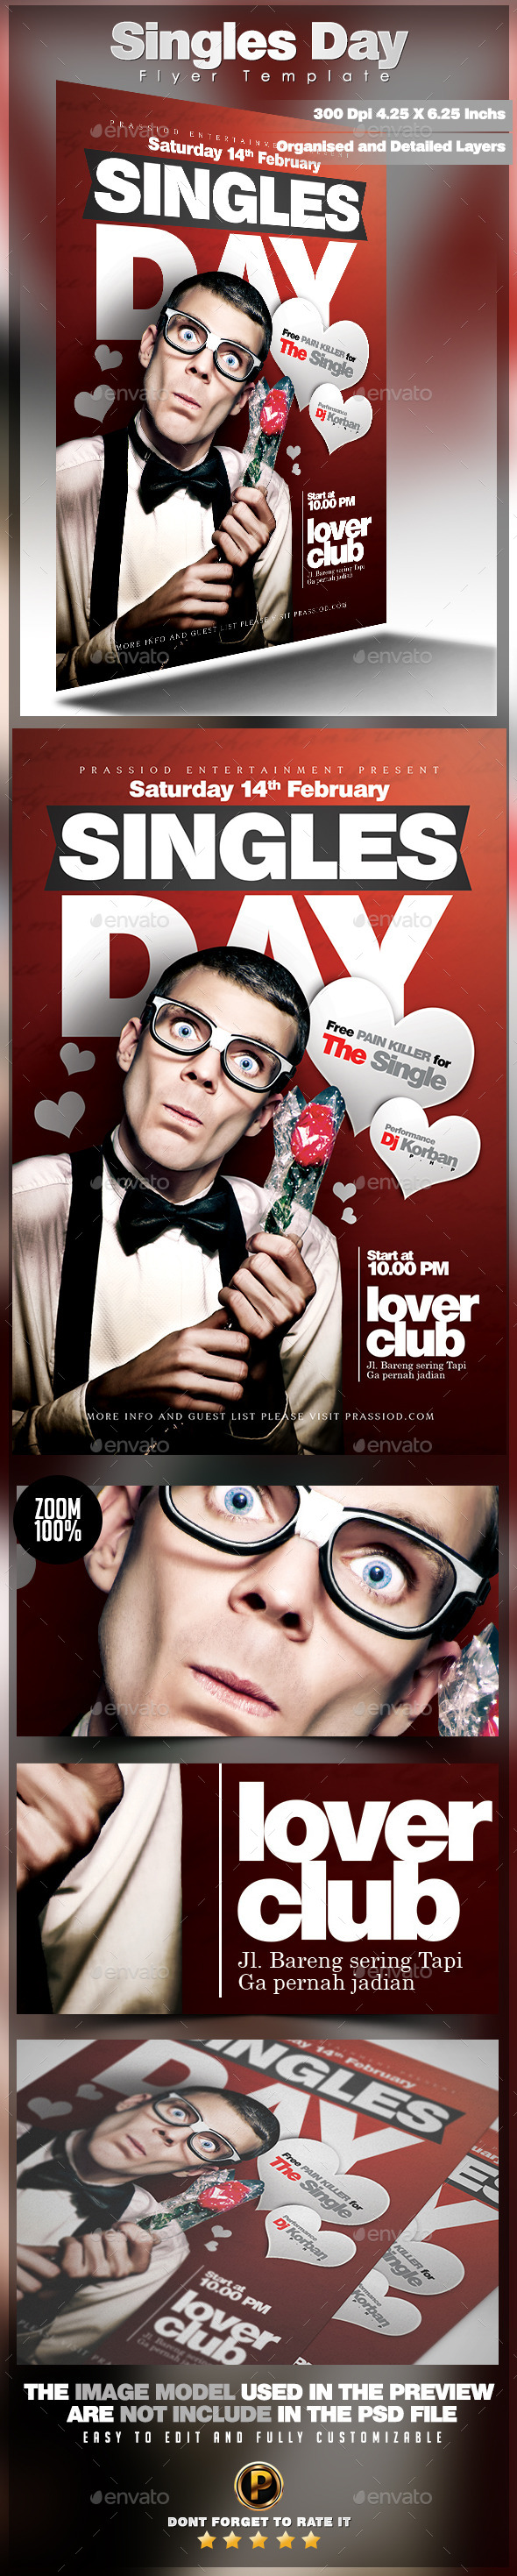 Singles Day Flyer Template - Clubs & Parties Events